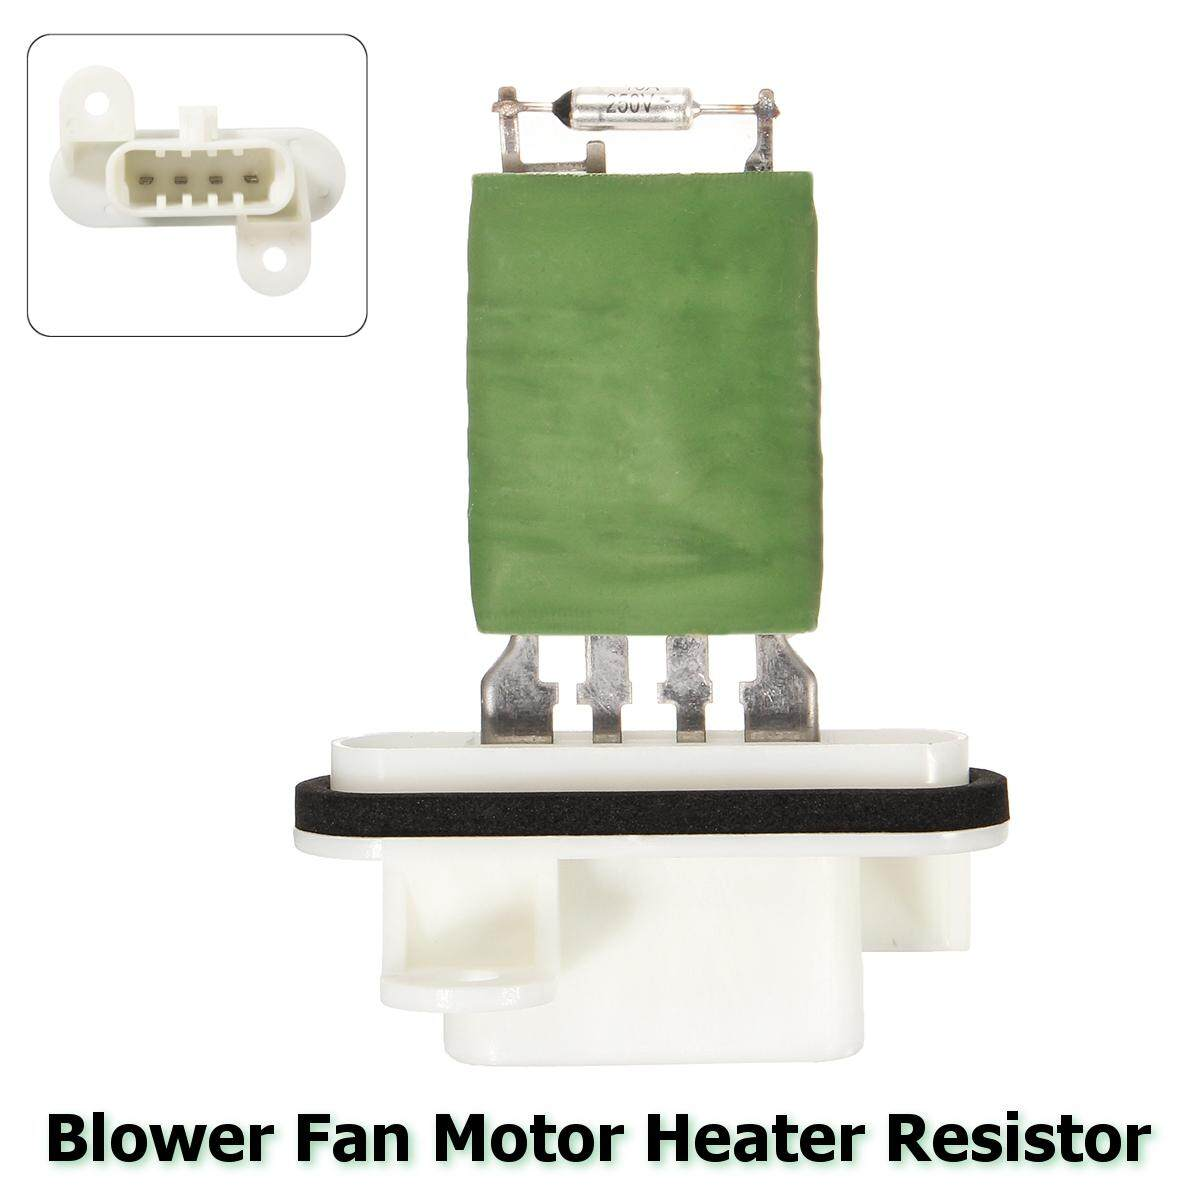 Blower Fan Motor Heater Resistor For Chevrolet Colorado GMC Canyon Isuzu i-290 - intl